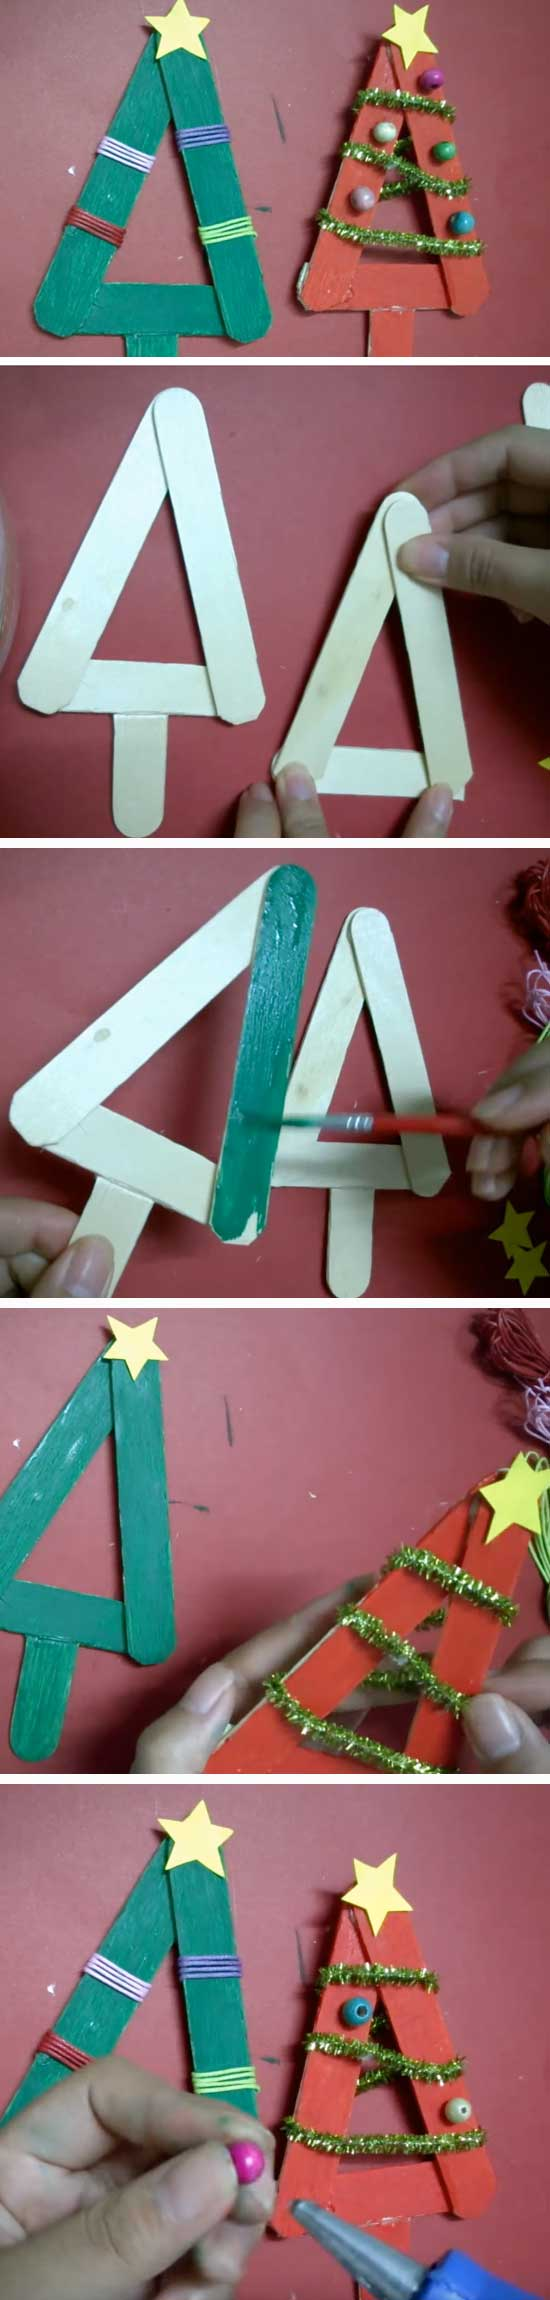 16 DIY Ideas and Tutorials to Recycle Popsicle Sticks for Christmas